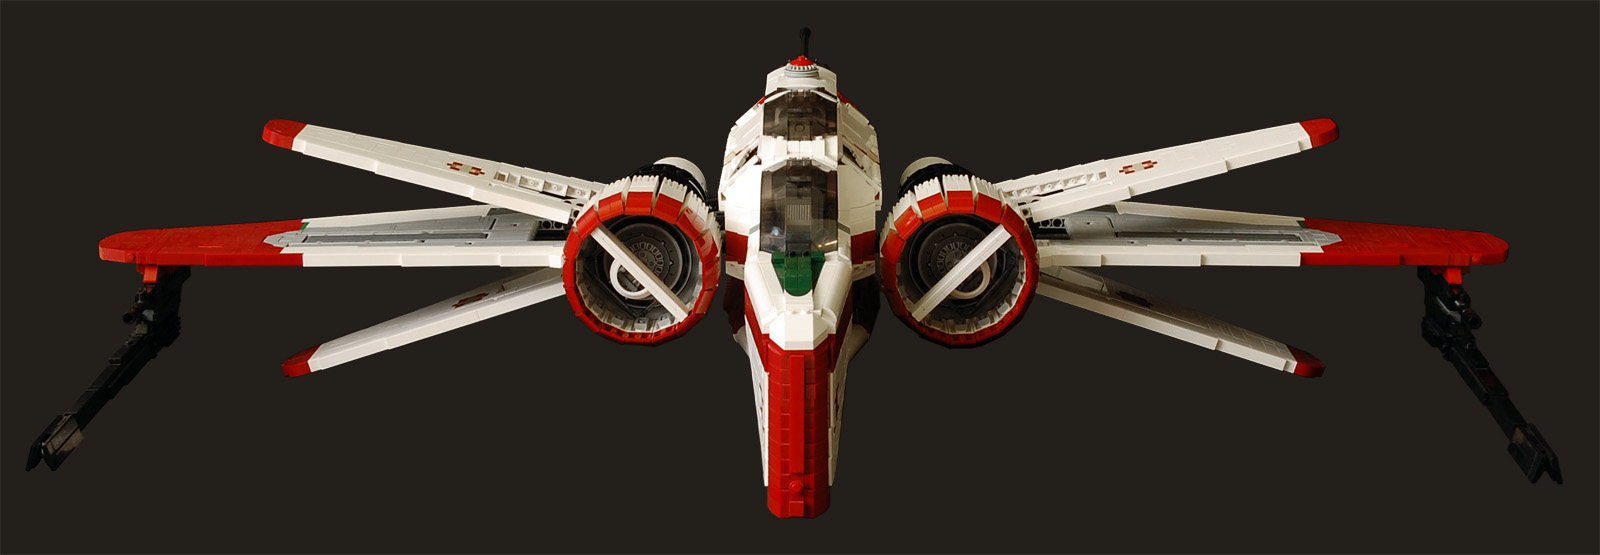 arc-170_starfighter_02.jpg